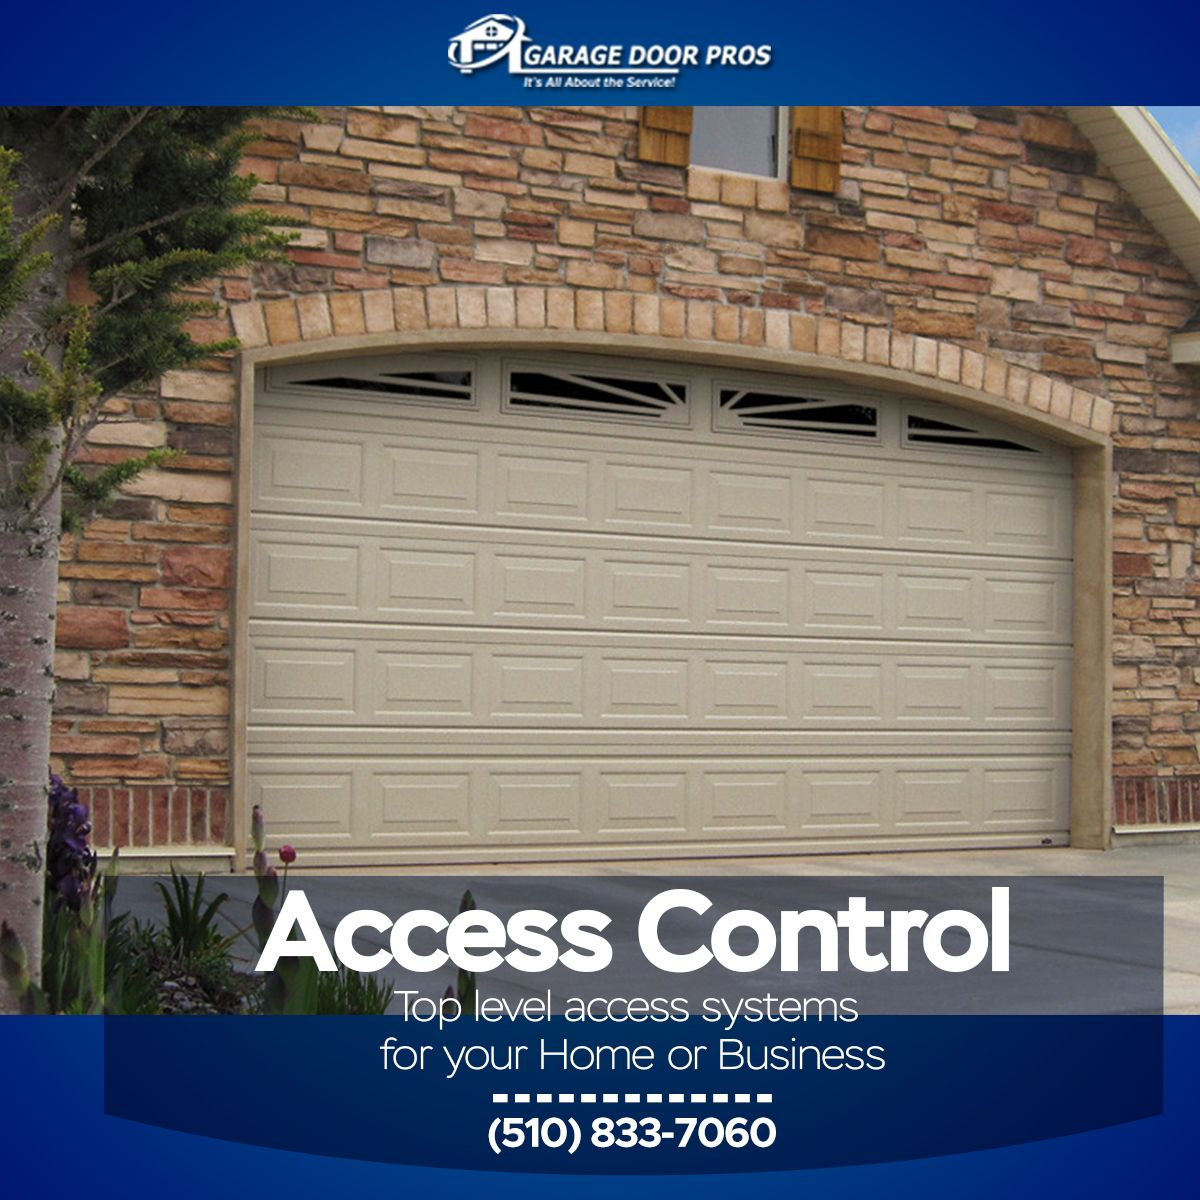 Are you looking for toplevel access systems for your home